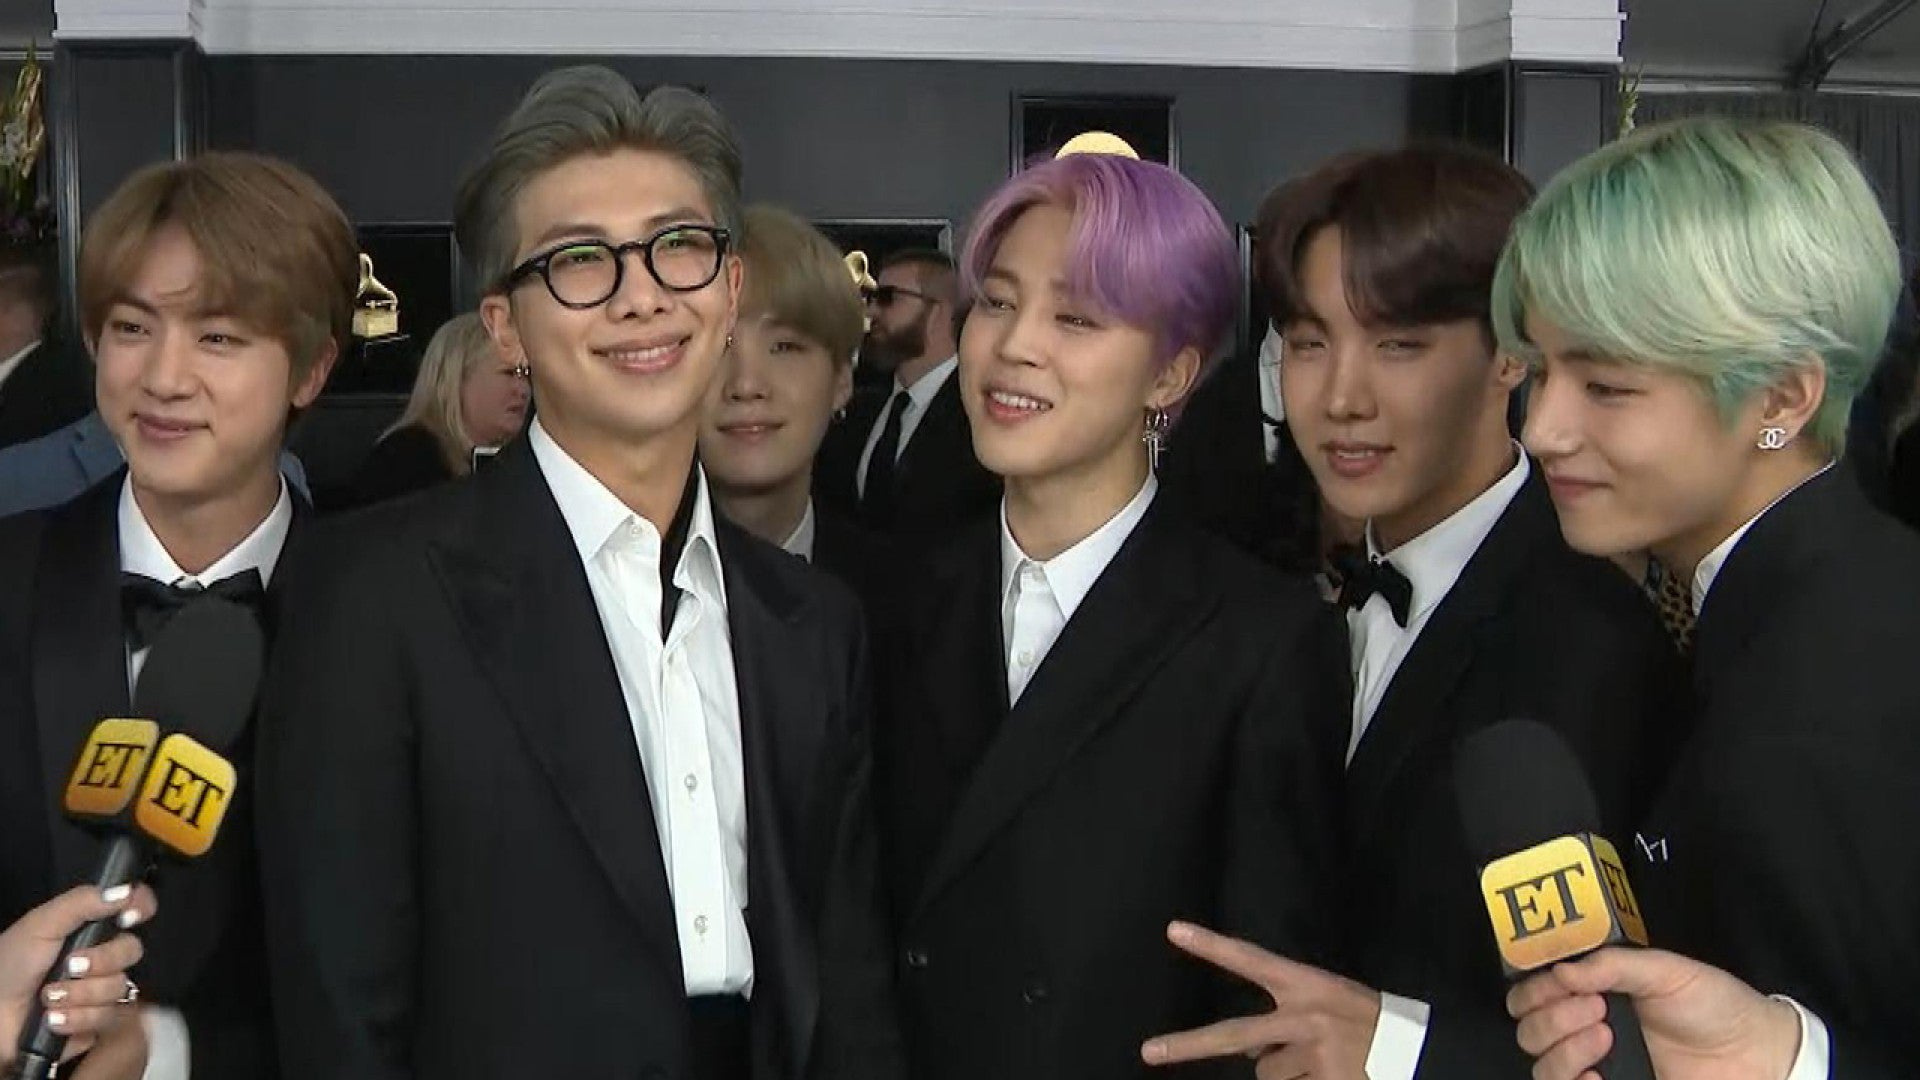 Bts Stayed Up All Night Working On New Music Before The 2019